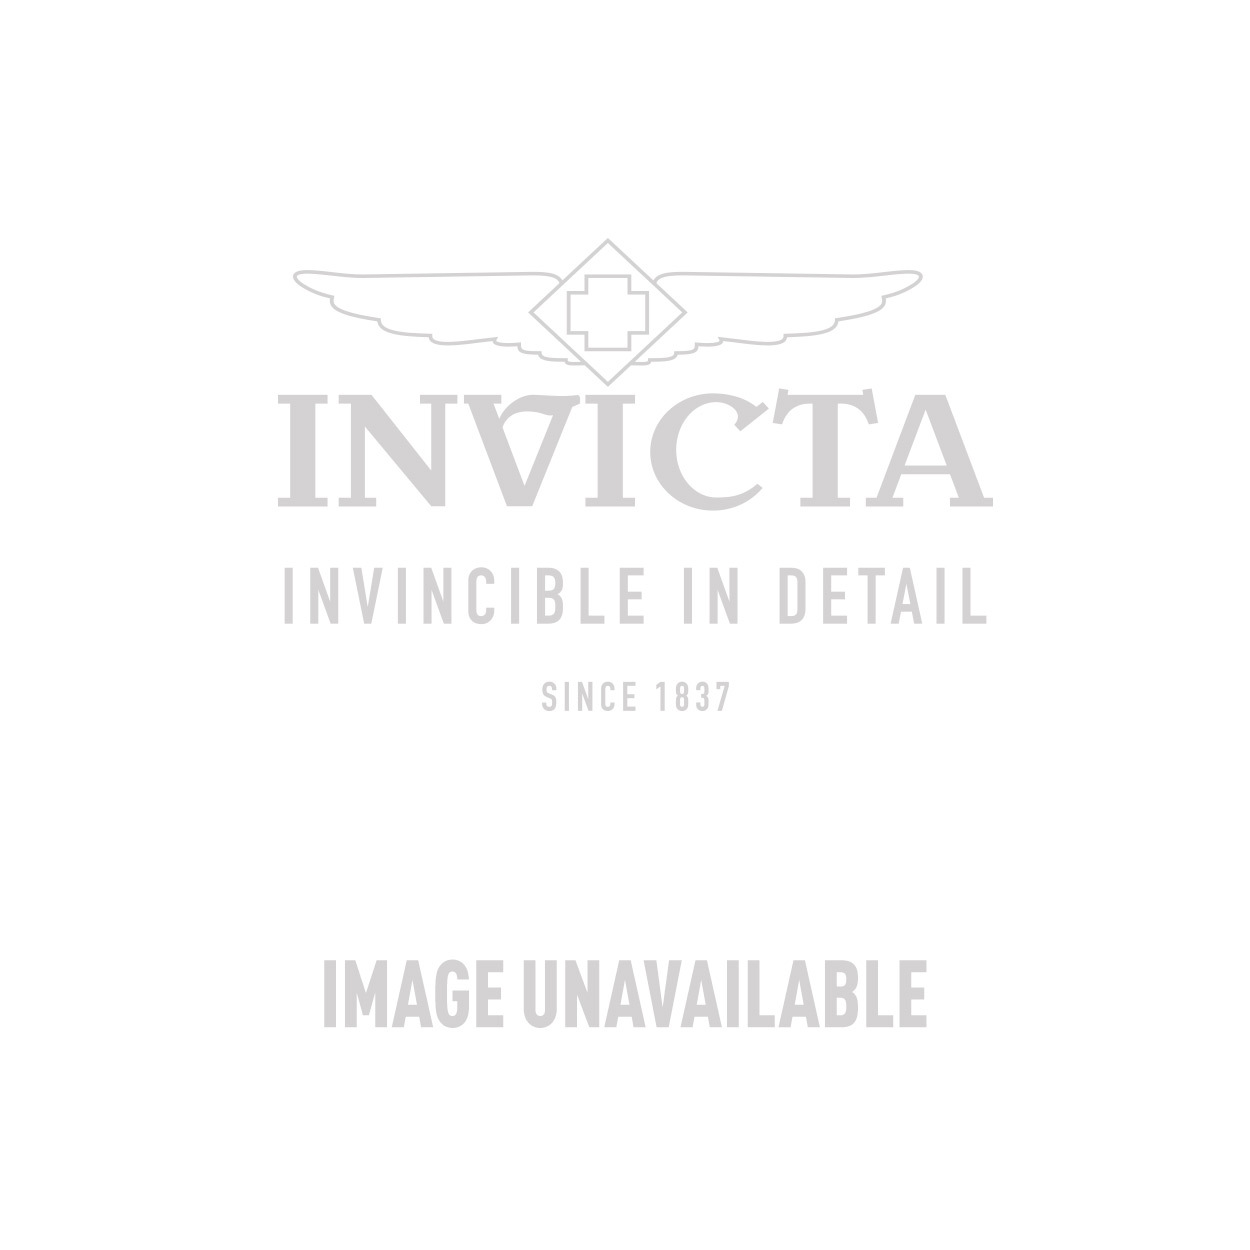 Invicta Specialty Quartz Watch - Gold, Stainless Steel case with Steel, Gold tone Stainless Steel band - Model 19399